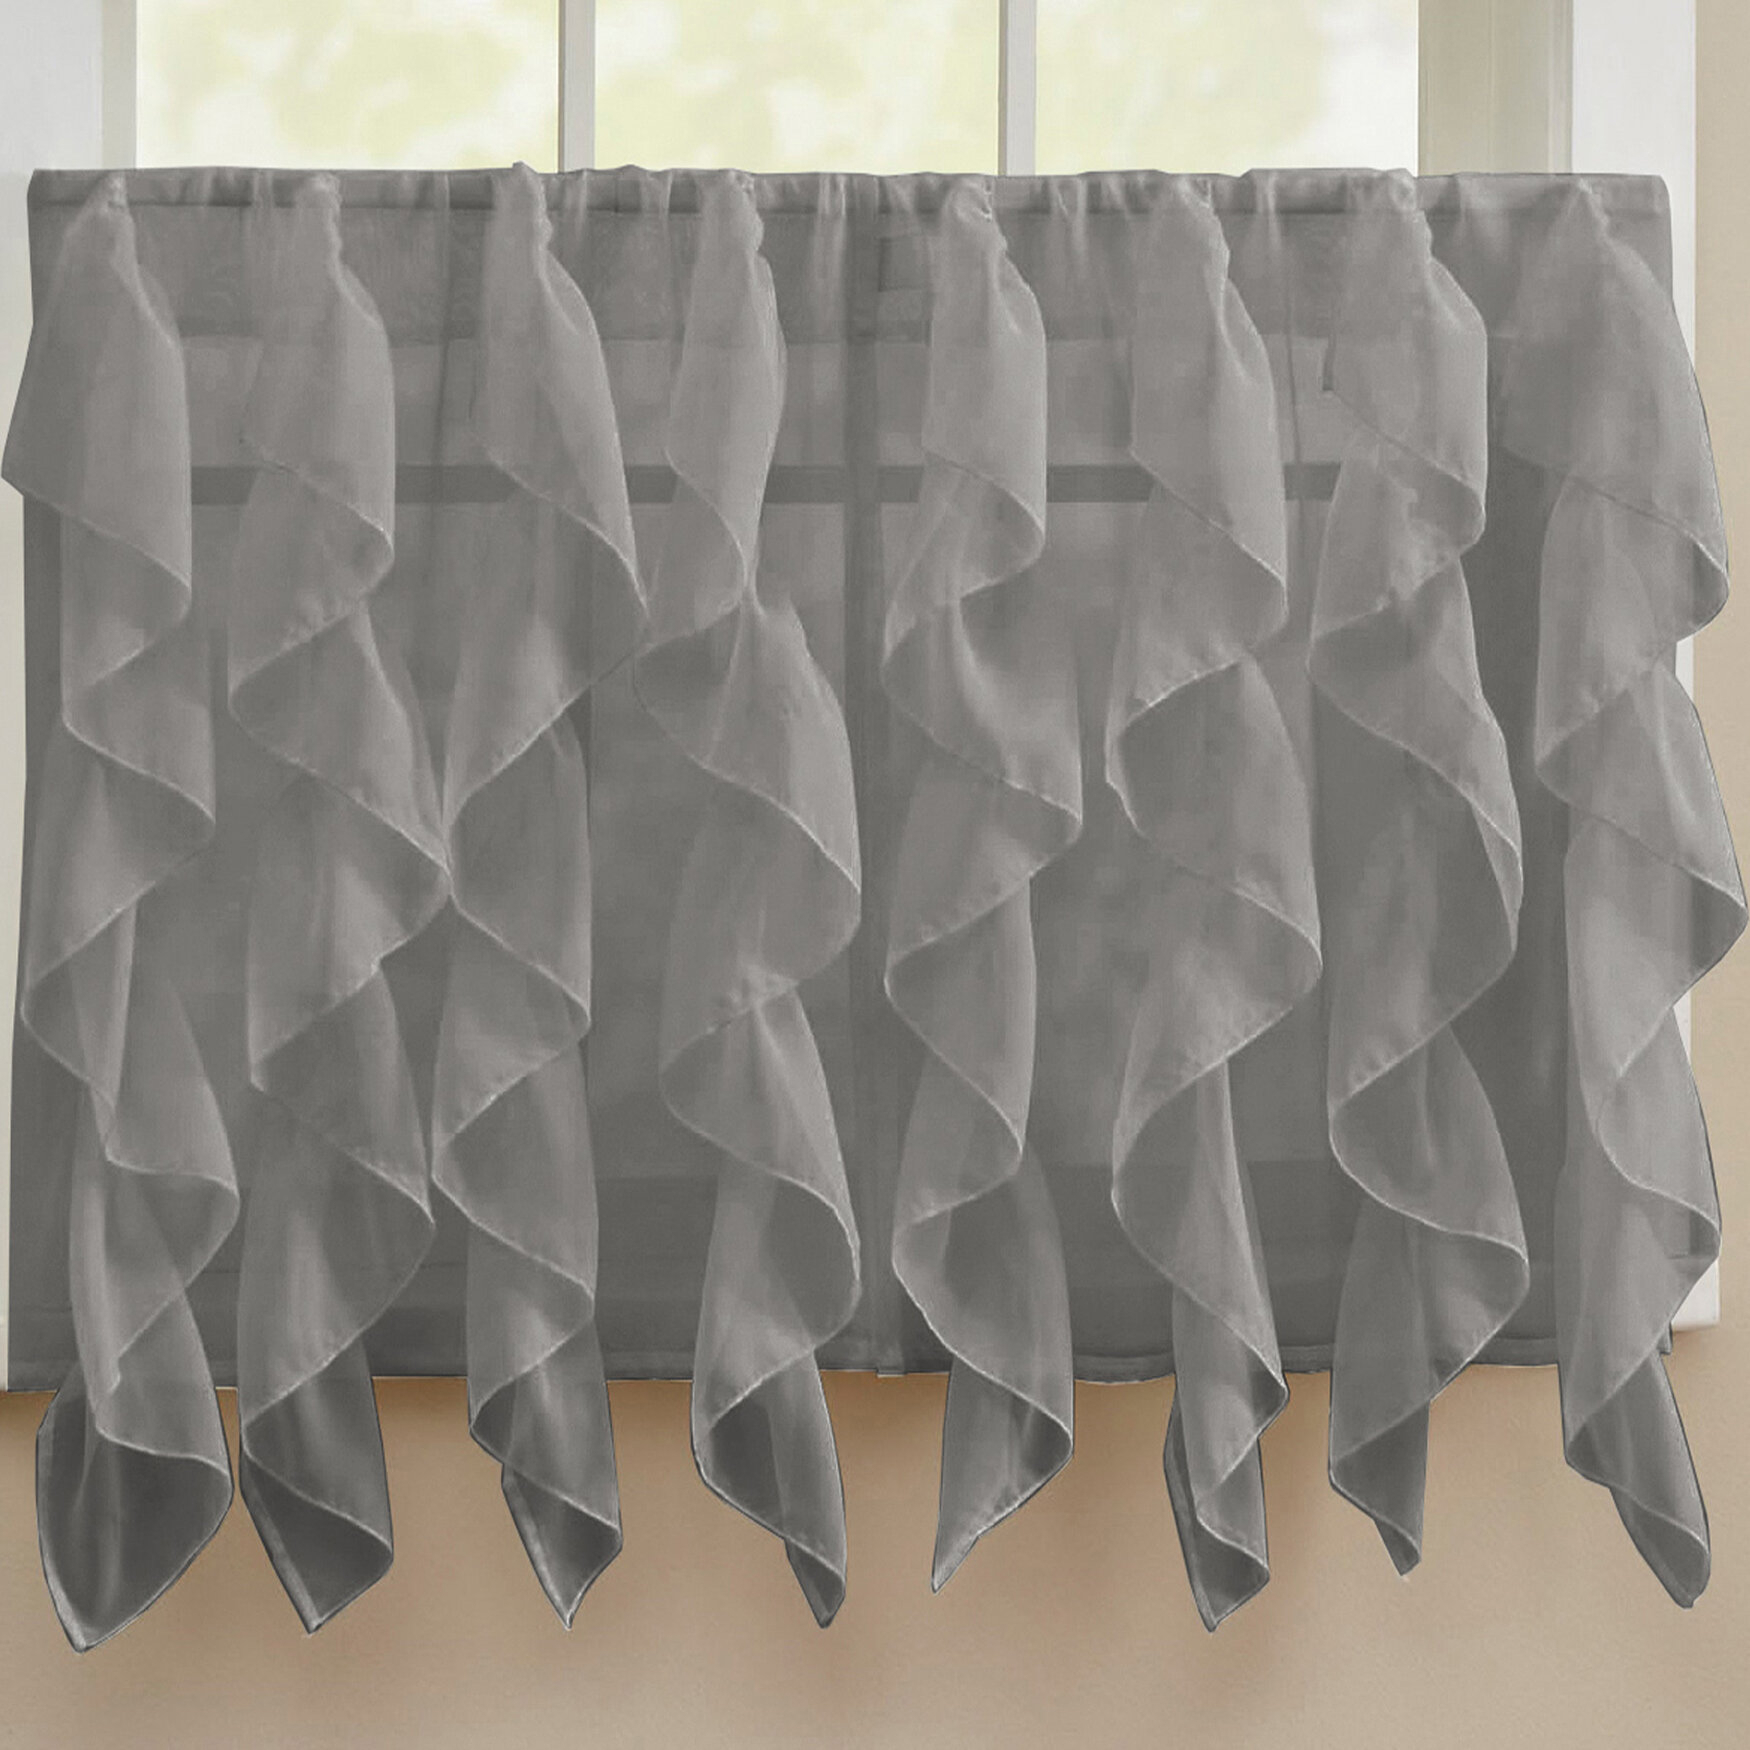 Fulgham Chic Sheer Voile Vertical Cafe Curtain Regarding Sheer Voile Waterfall Ruffled Tier Single Curtain Panels (View 11 of 20)